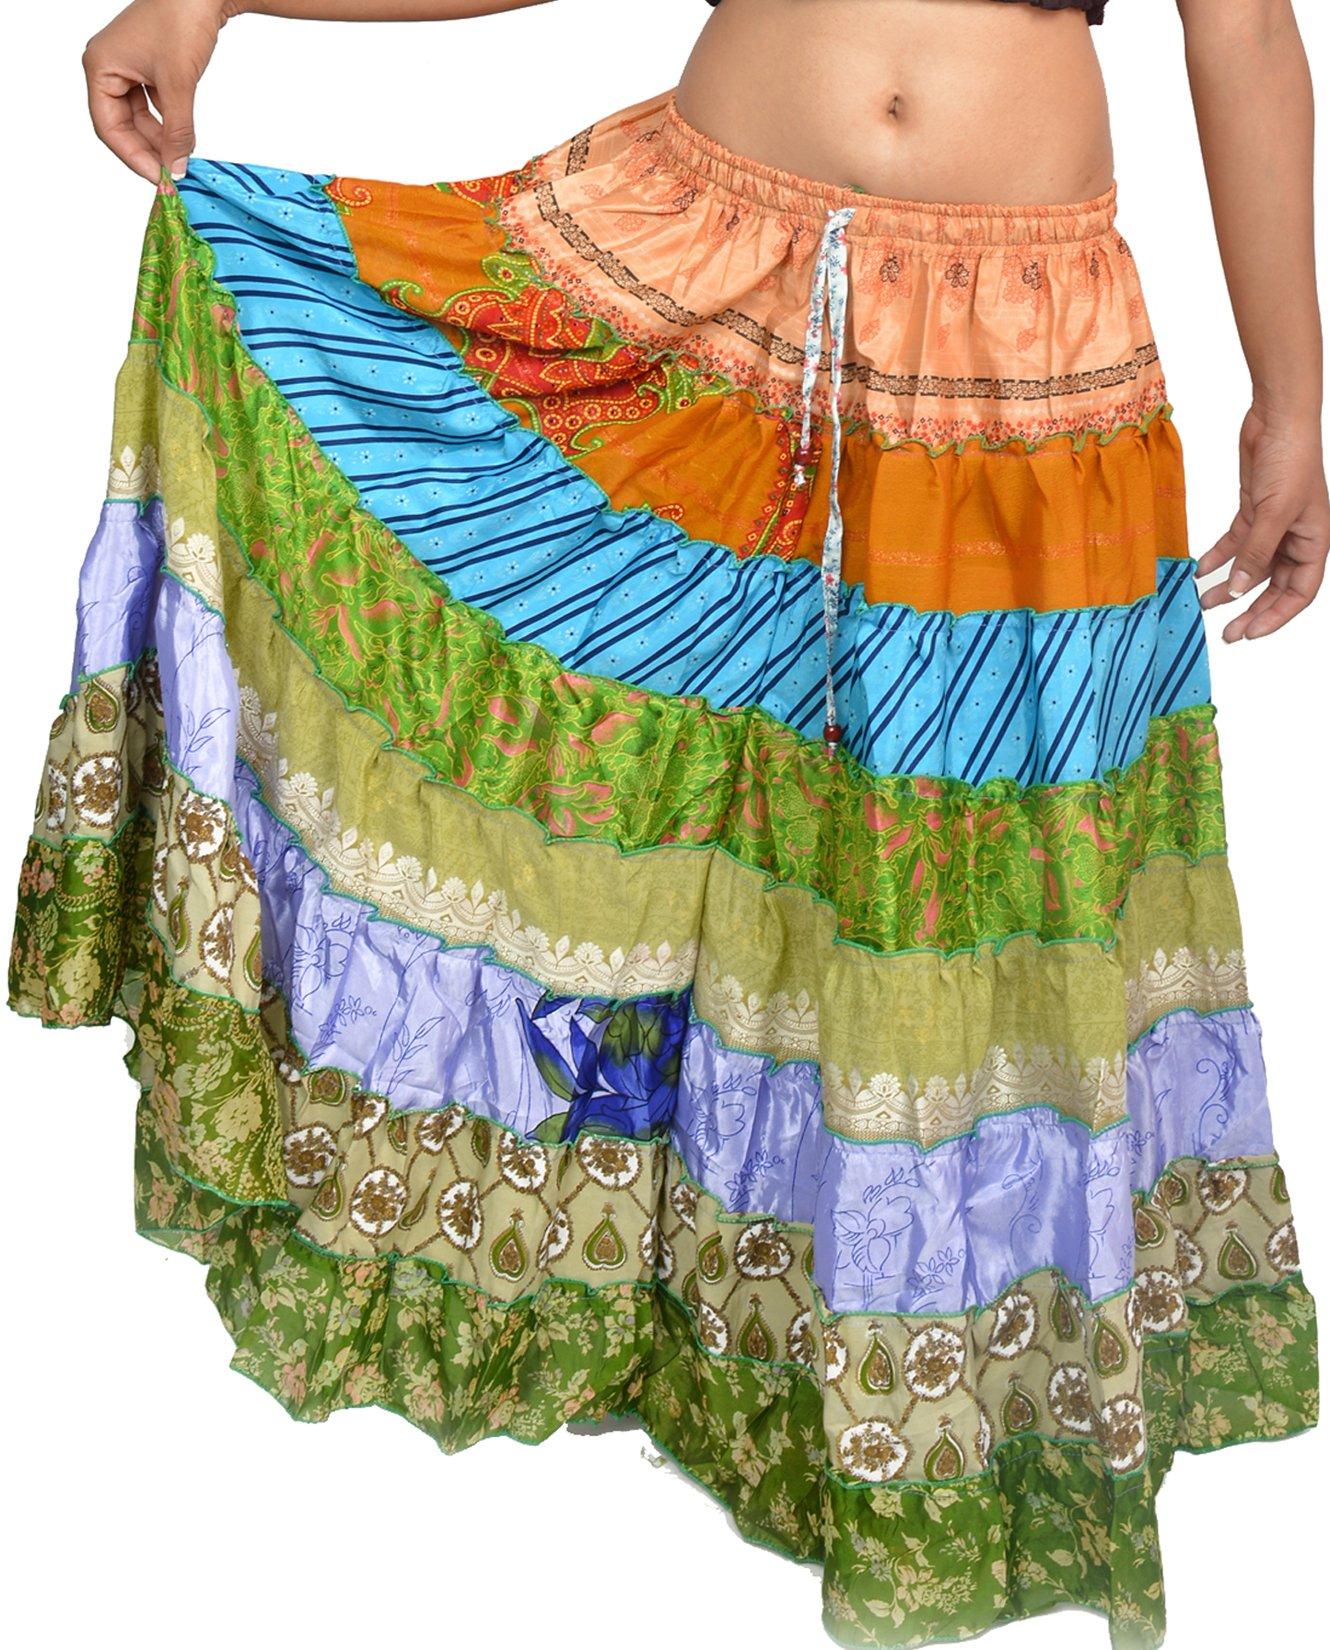 Wevez Women's Pack of 3 Tribal Style 7-Layer Skirt, One Size, Assorted